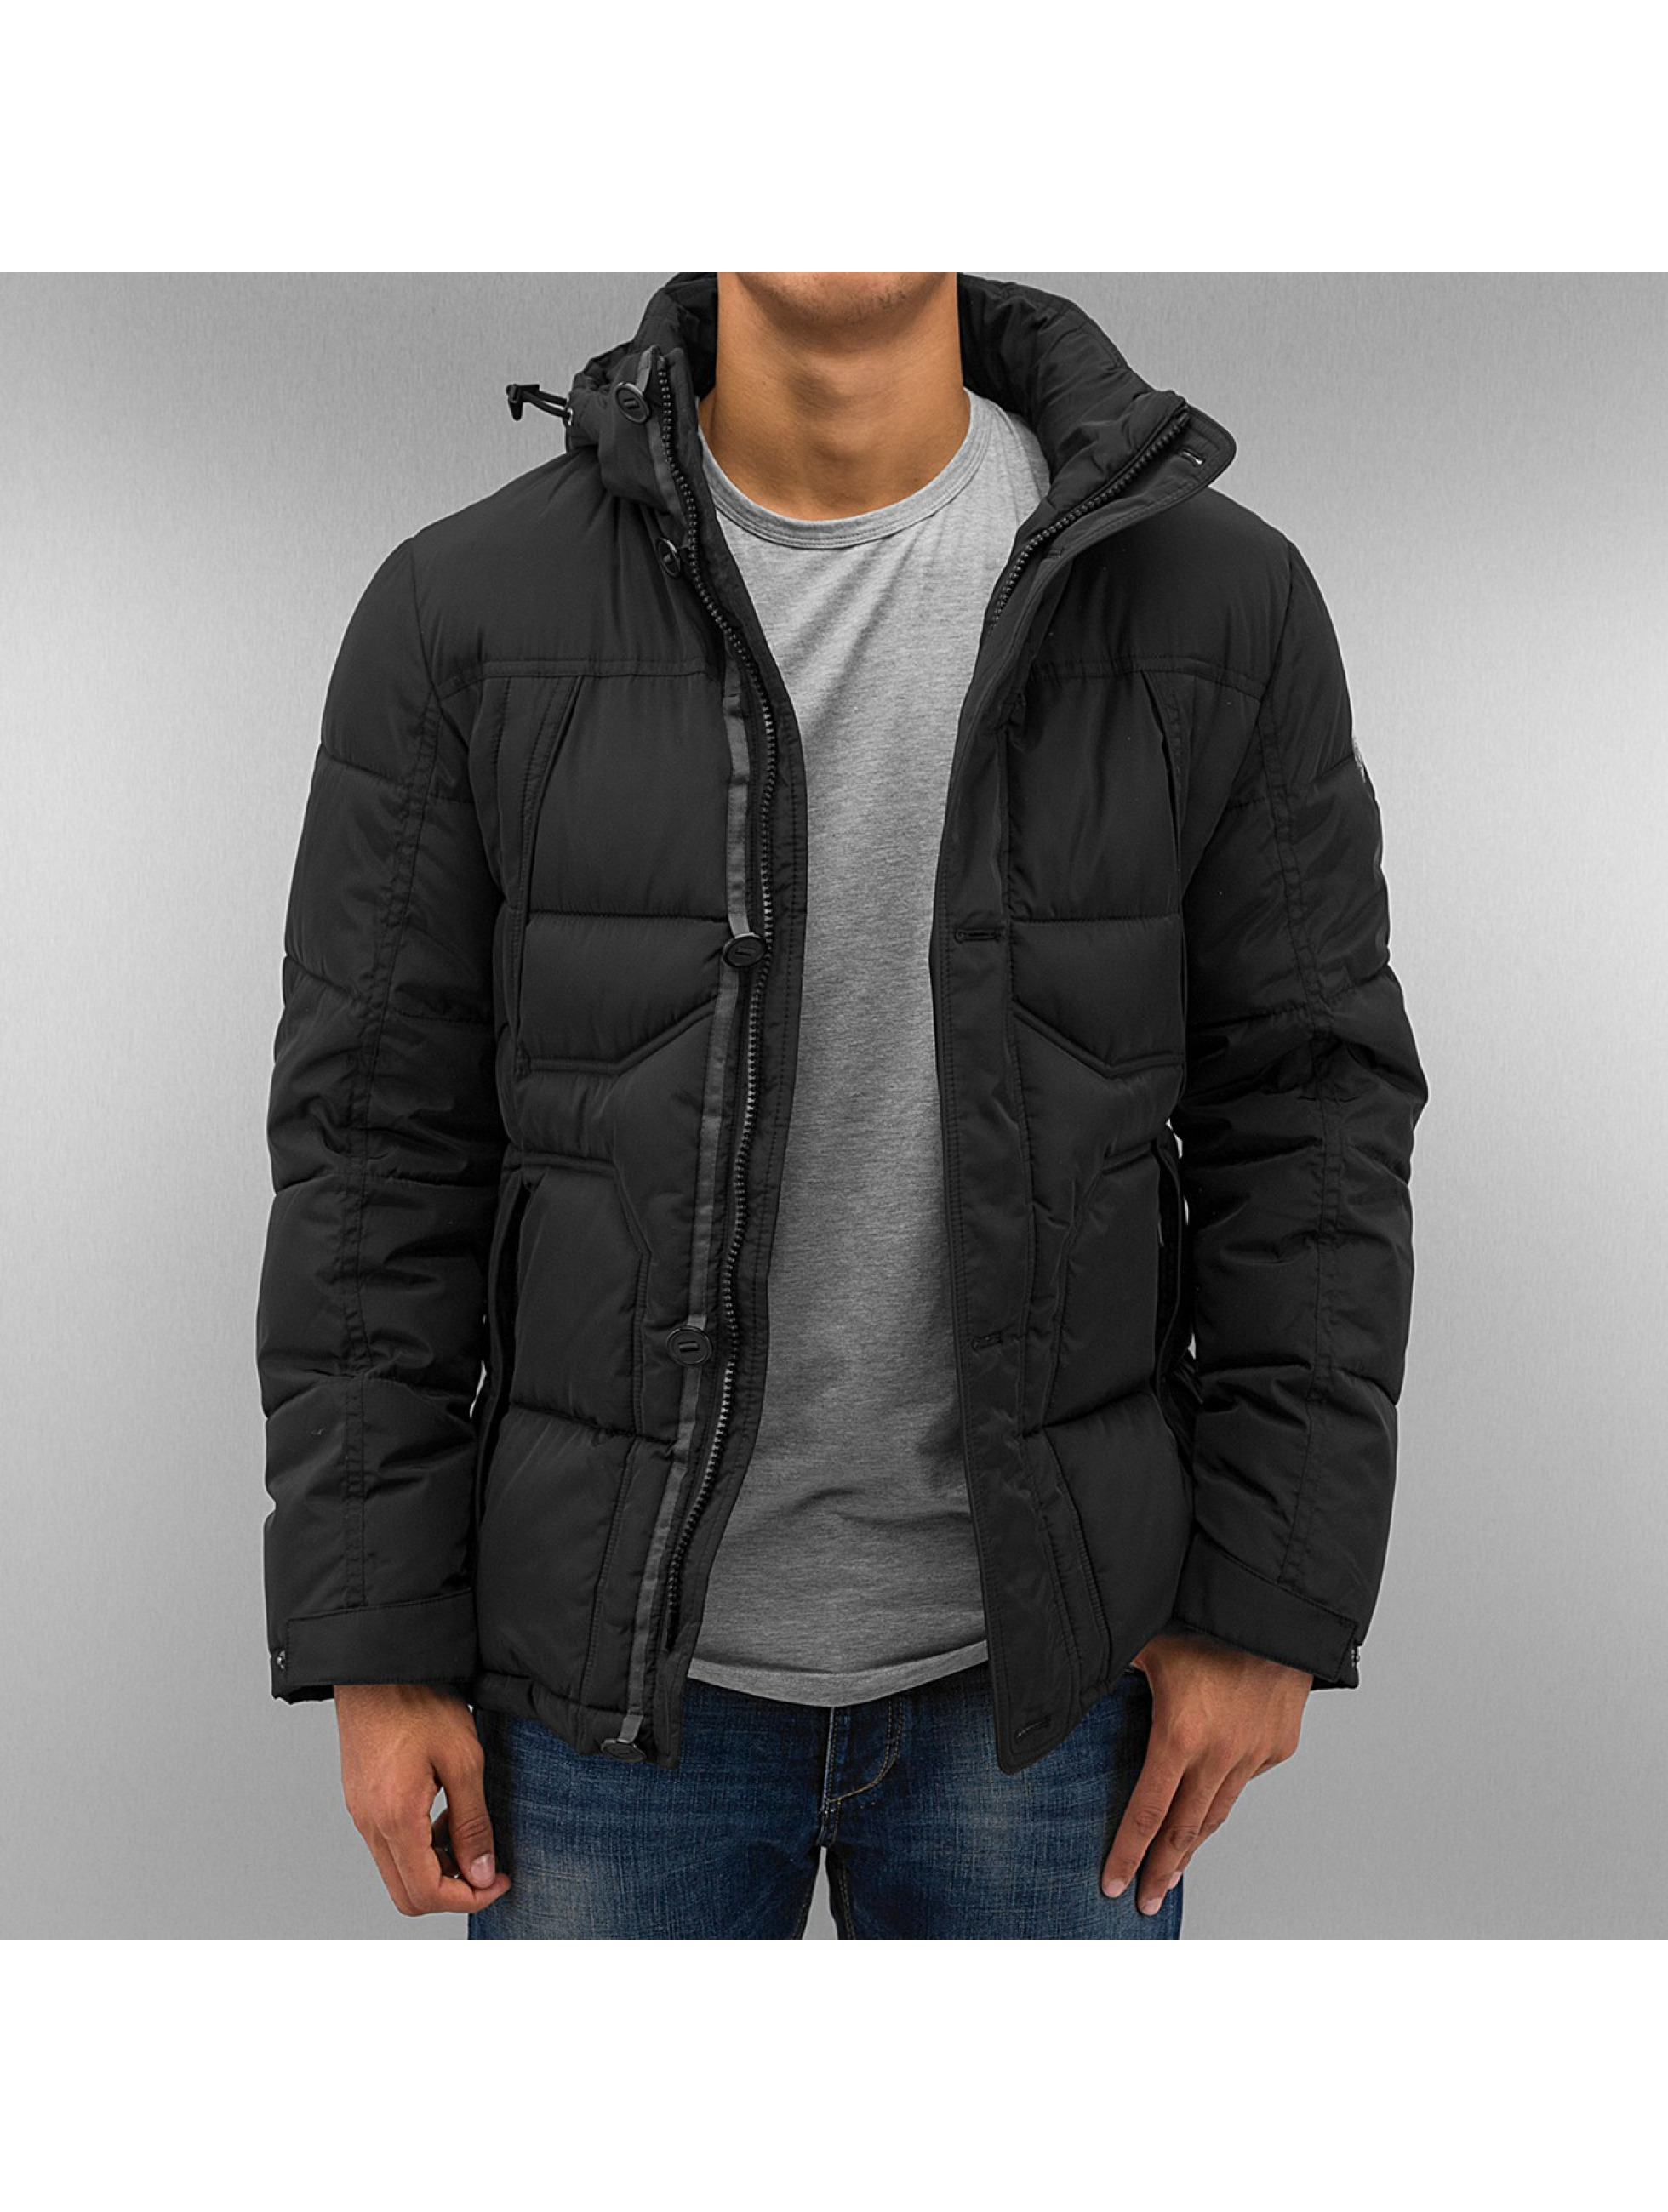 Patria Mardini Bleu Winter Jacket black